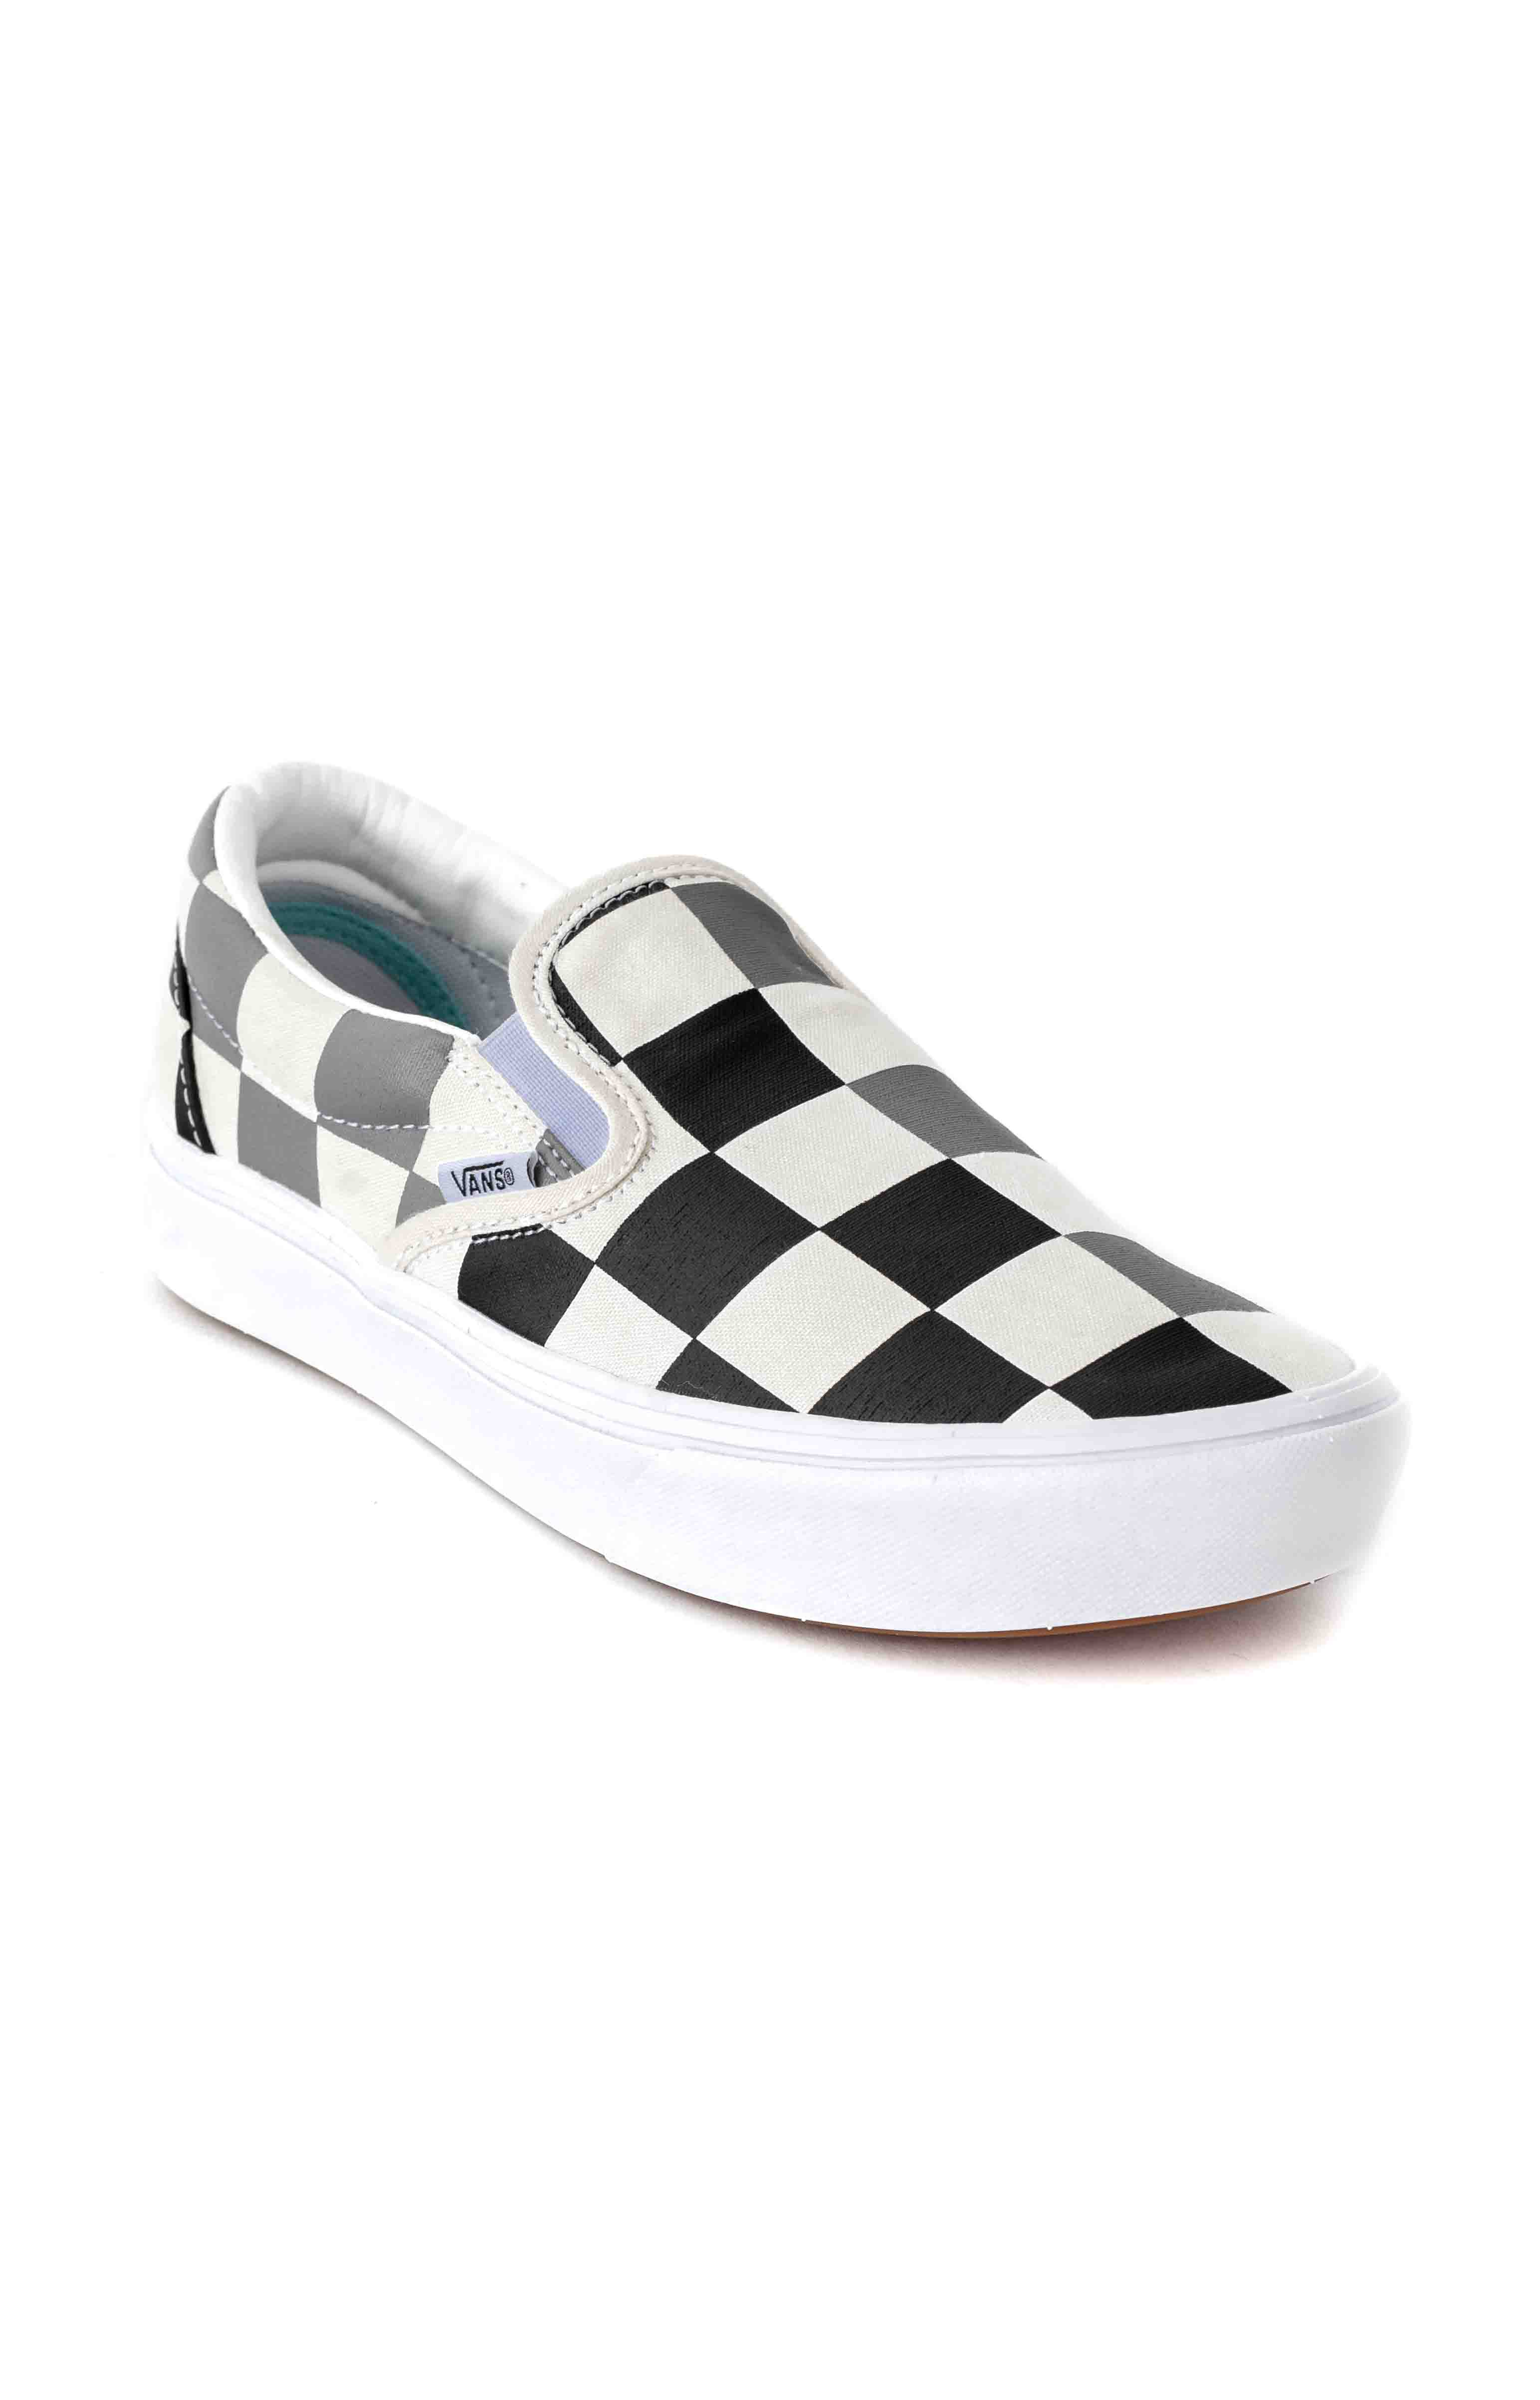 (WMDWXA) Half Big Checker ComfyCush Slip-On Shoe - Black/Grey 4